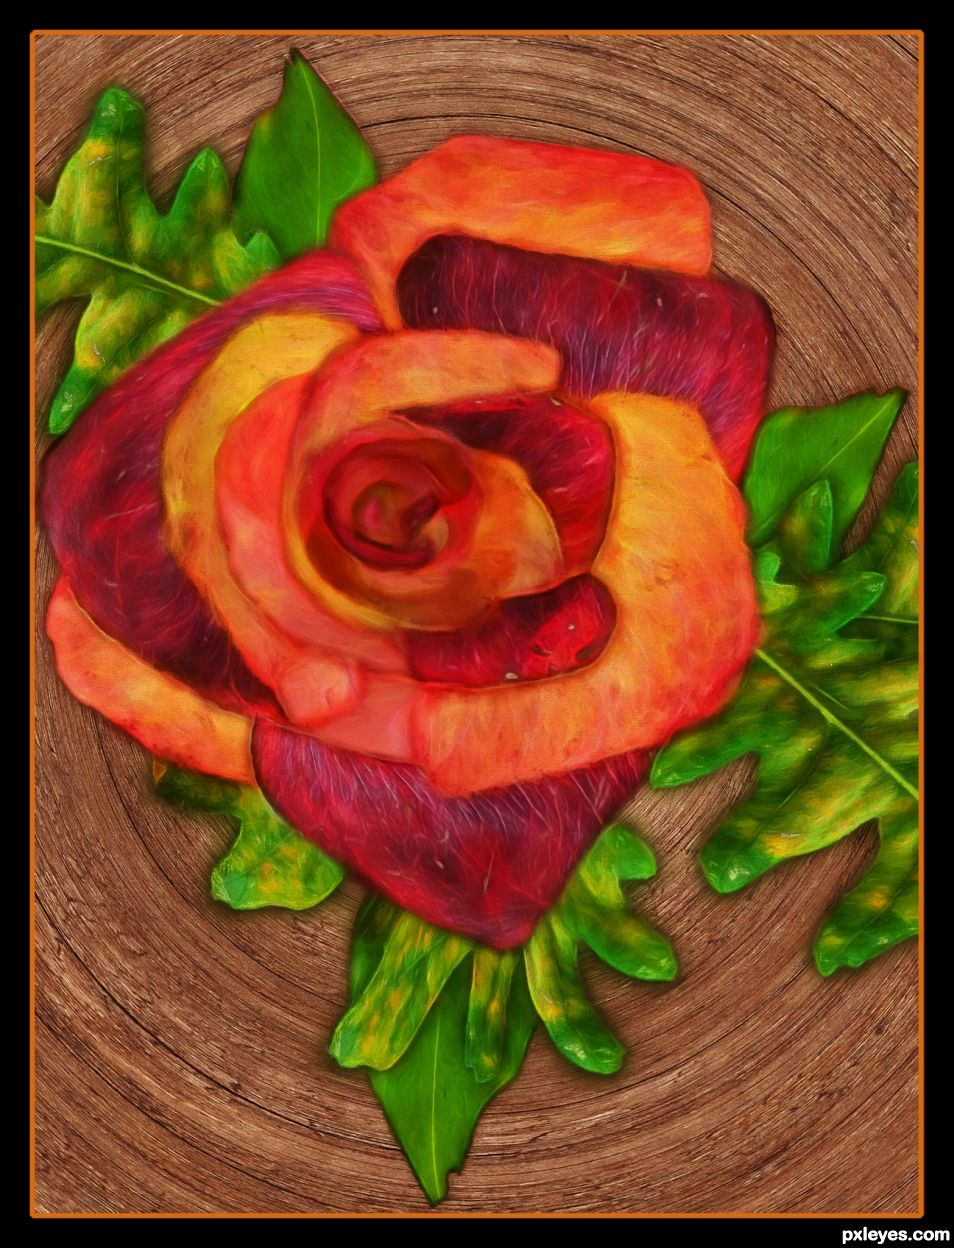 Creation of Autumn Rose: Final Result